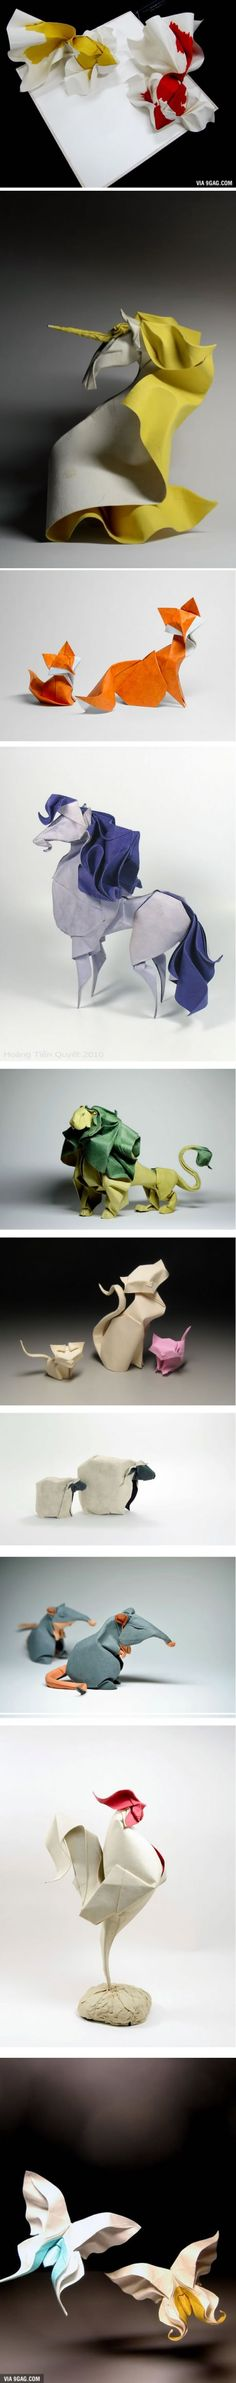 "Artist Creates Incredibly Realistic Animal Origami Using ""Wet-Folding"" Skills (By Hoàng Tiến Quyết)"